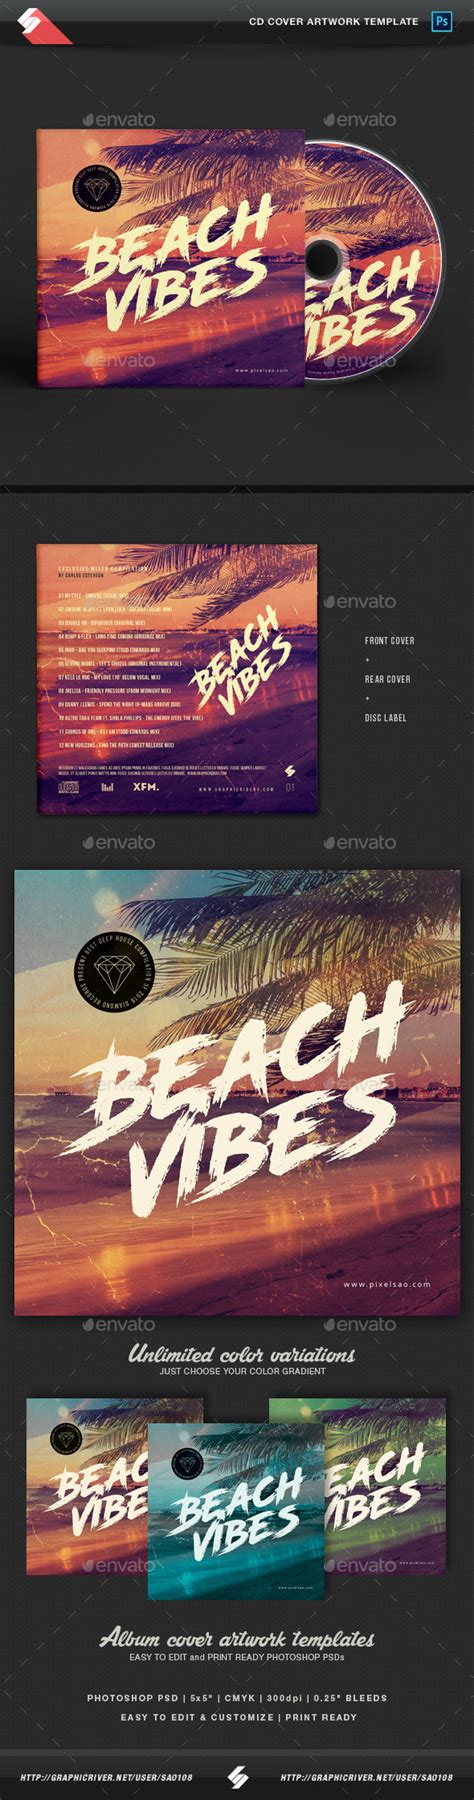 house music album covers beach vibes house music cd cover template by sao108 graphicriver